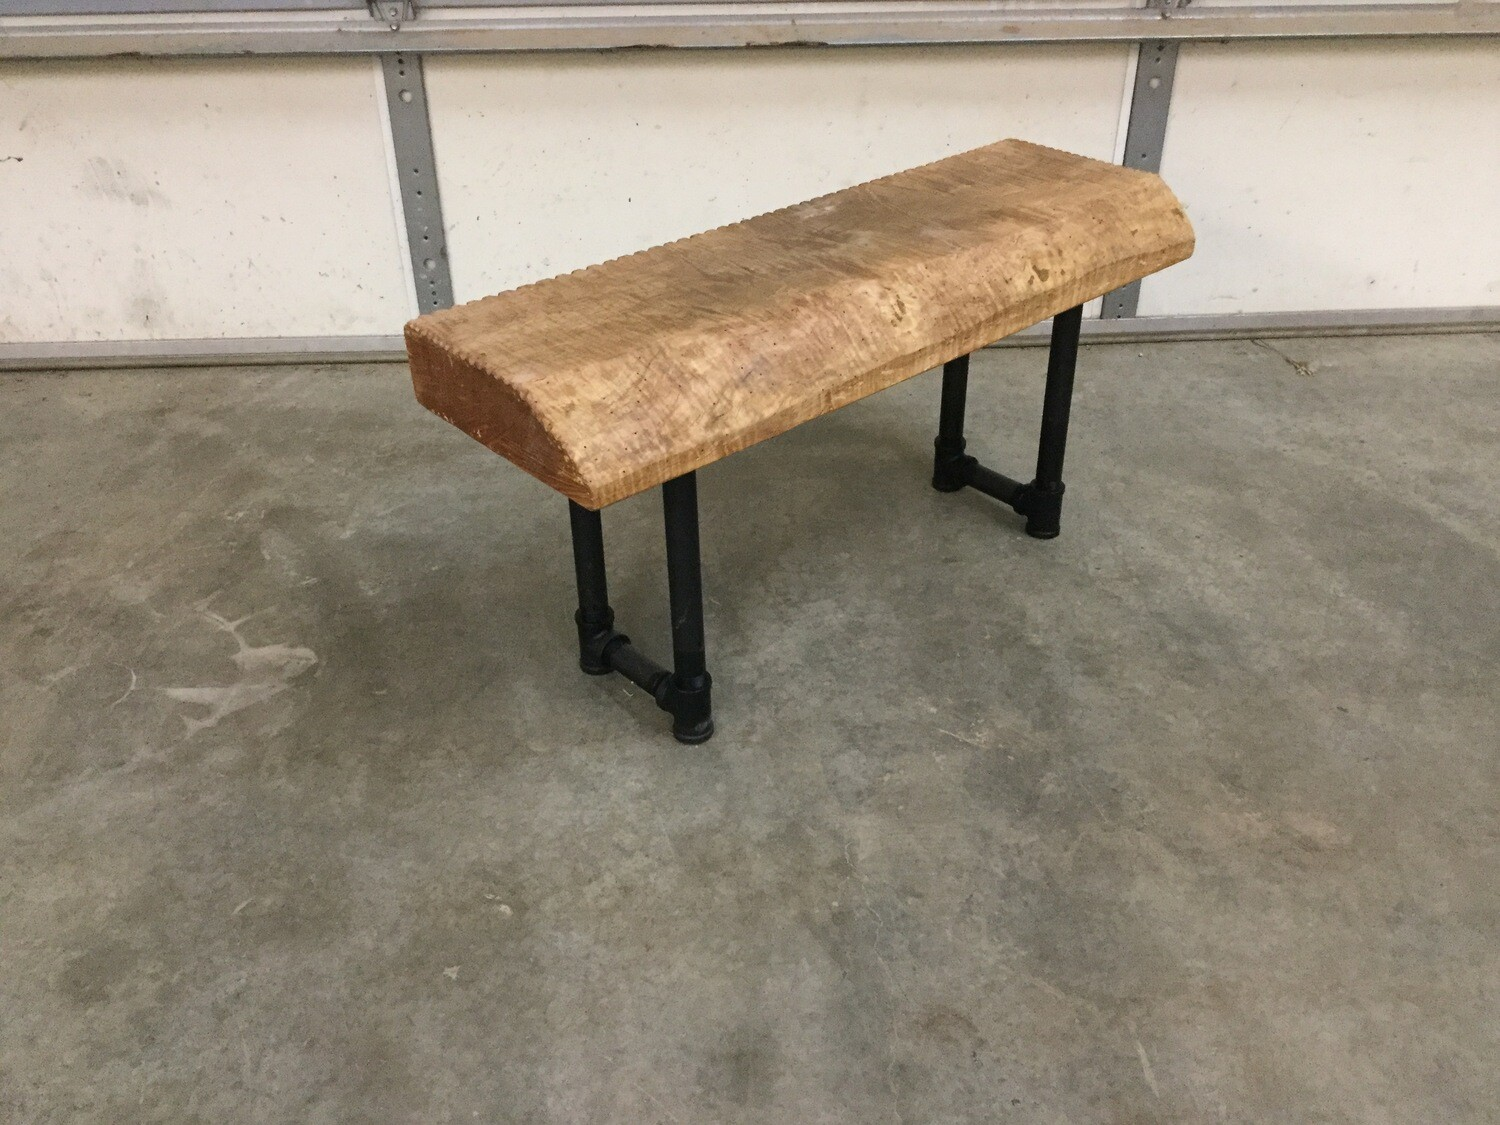 2057 Curly Maple Live Edge Porch Bench $249.99